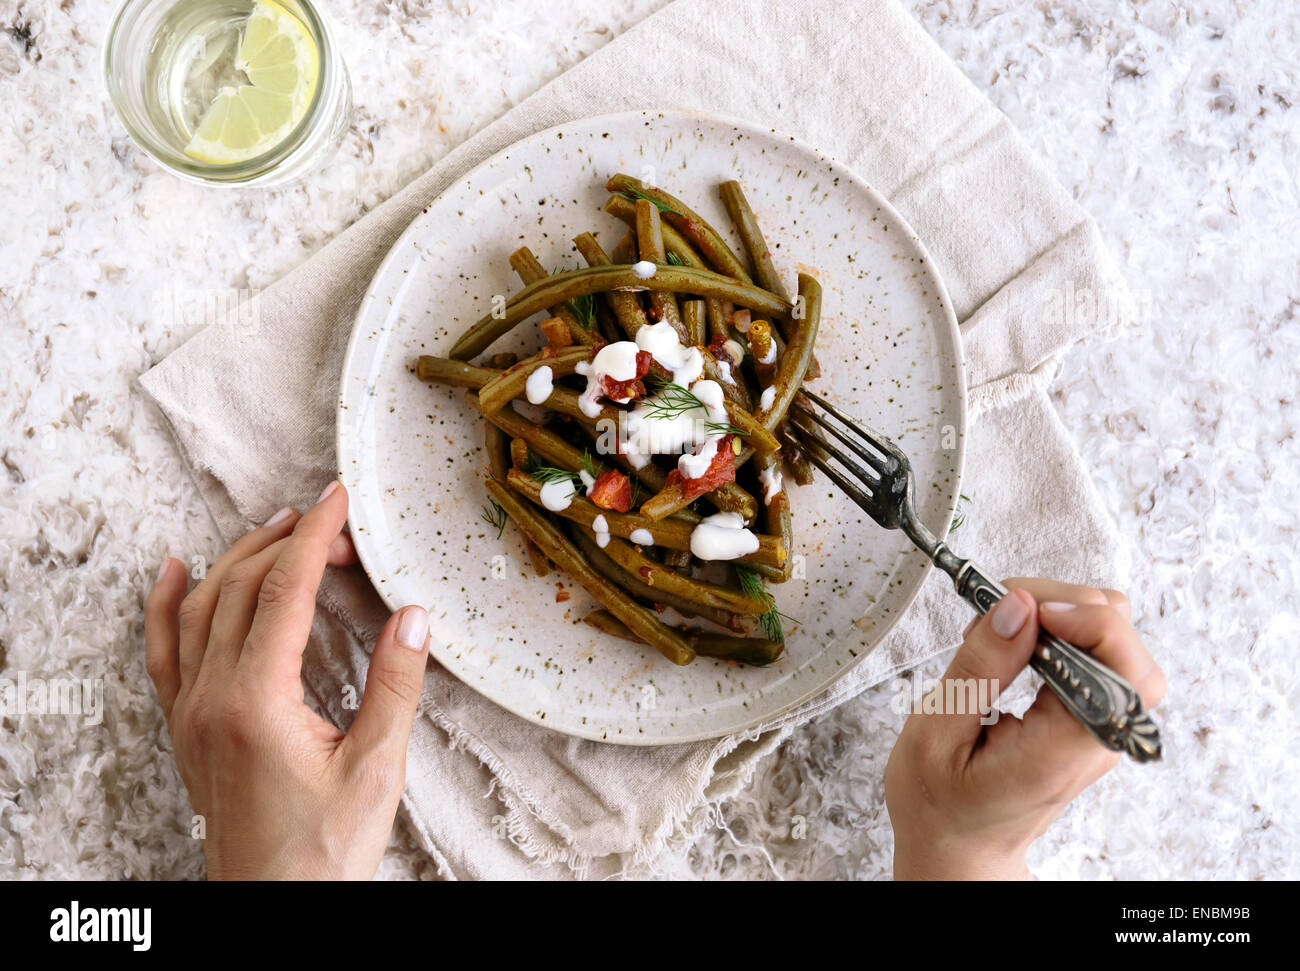 Mediterranean-Style Green Beans served on a plate and a person is about to eat it. - Stock Image